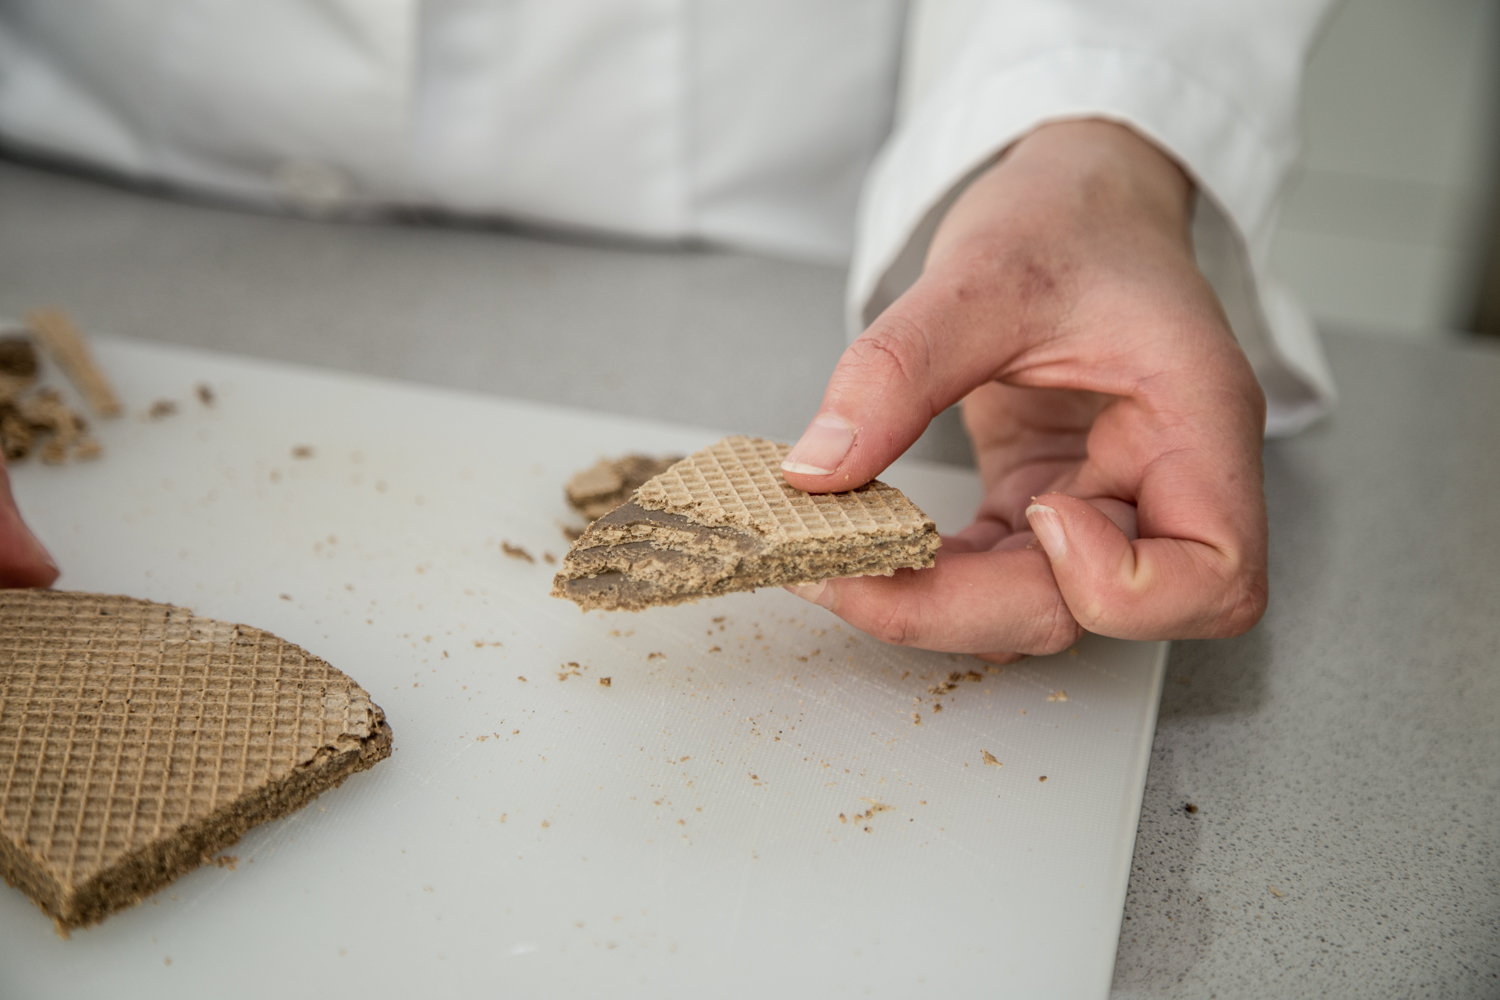 The benefits of insects are being explored across the food chain. Here: insect flour waffles from a previous project. (© FH JOANNEUM / Manfred Terler)